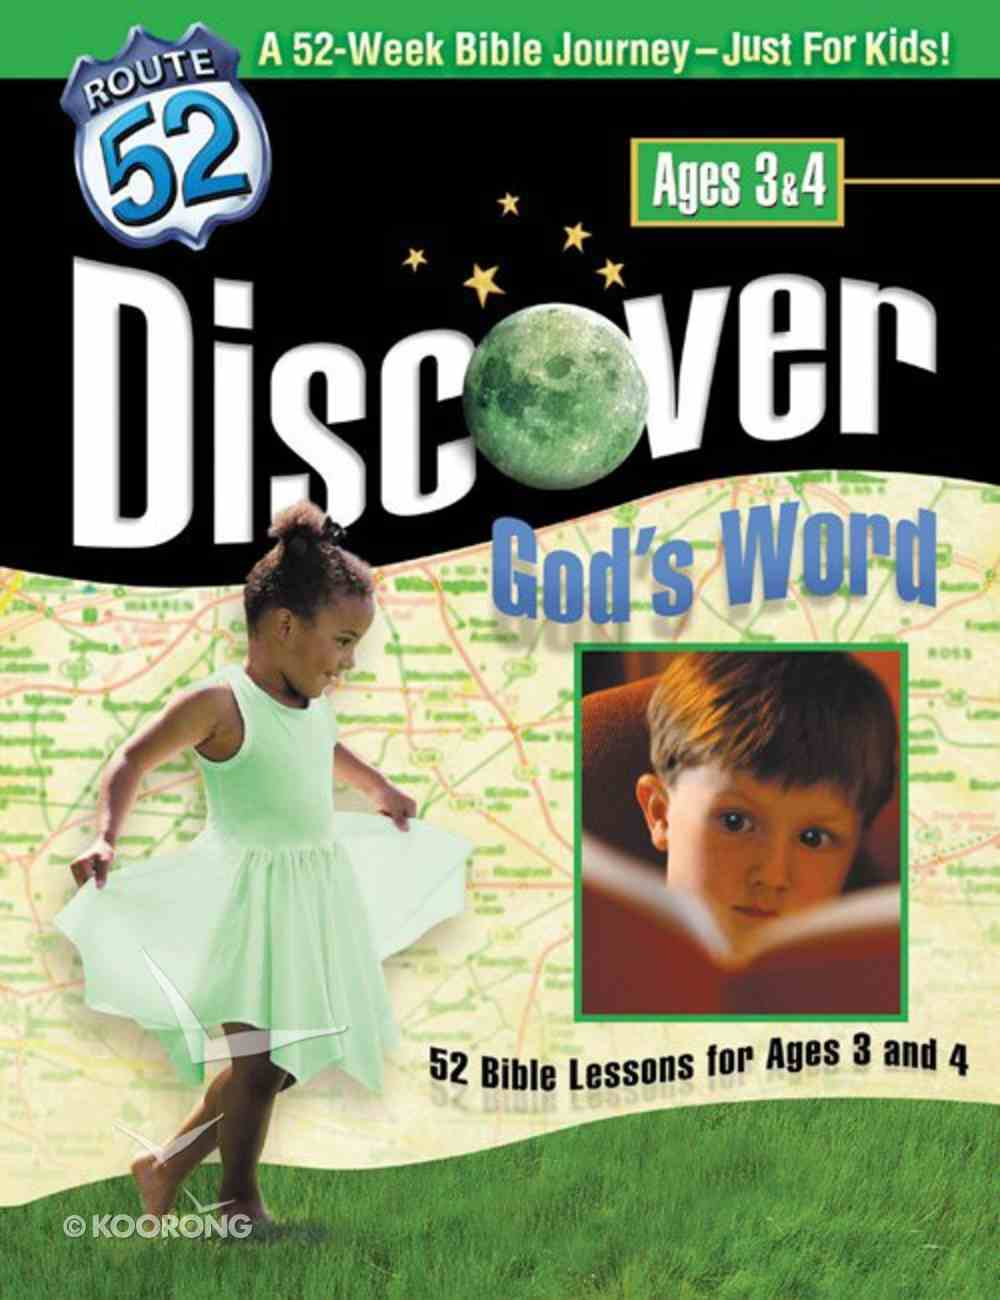 Route 52: Discover God's Word Paperback